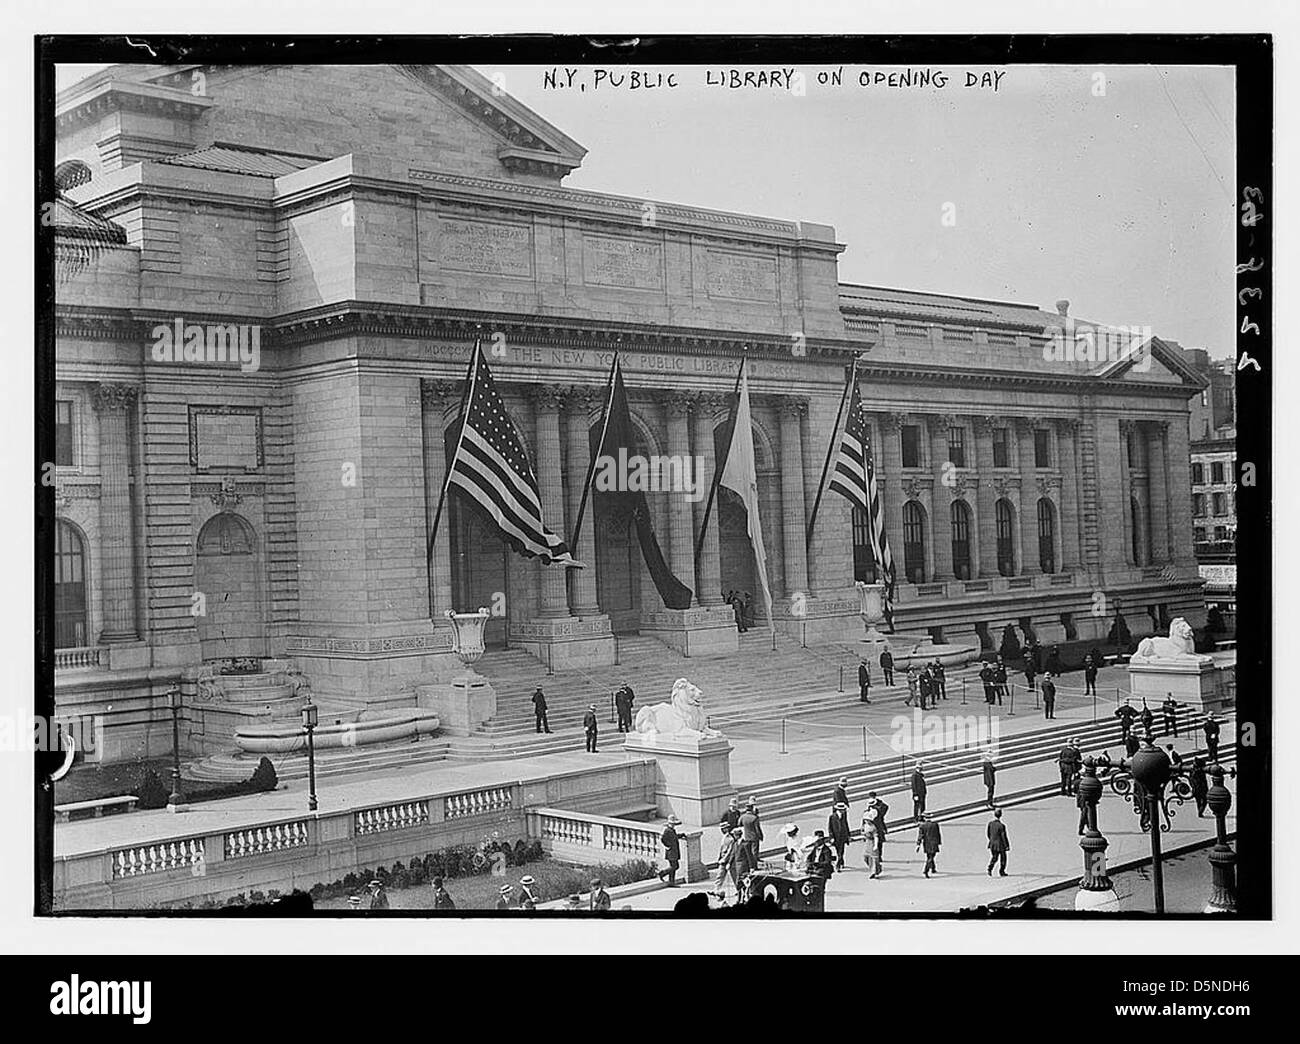 N.Y. Public Library on opening day (LOC) - Stock Image